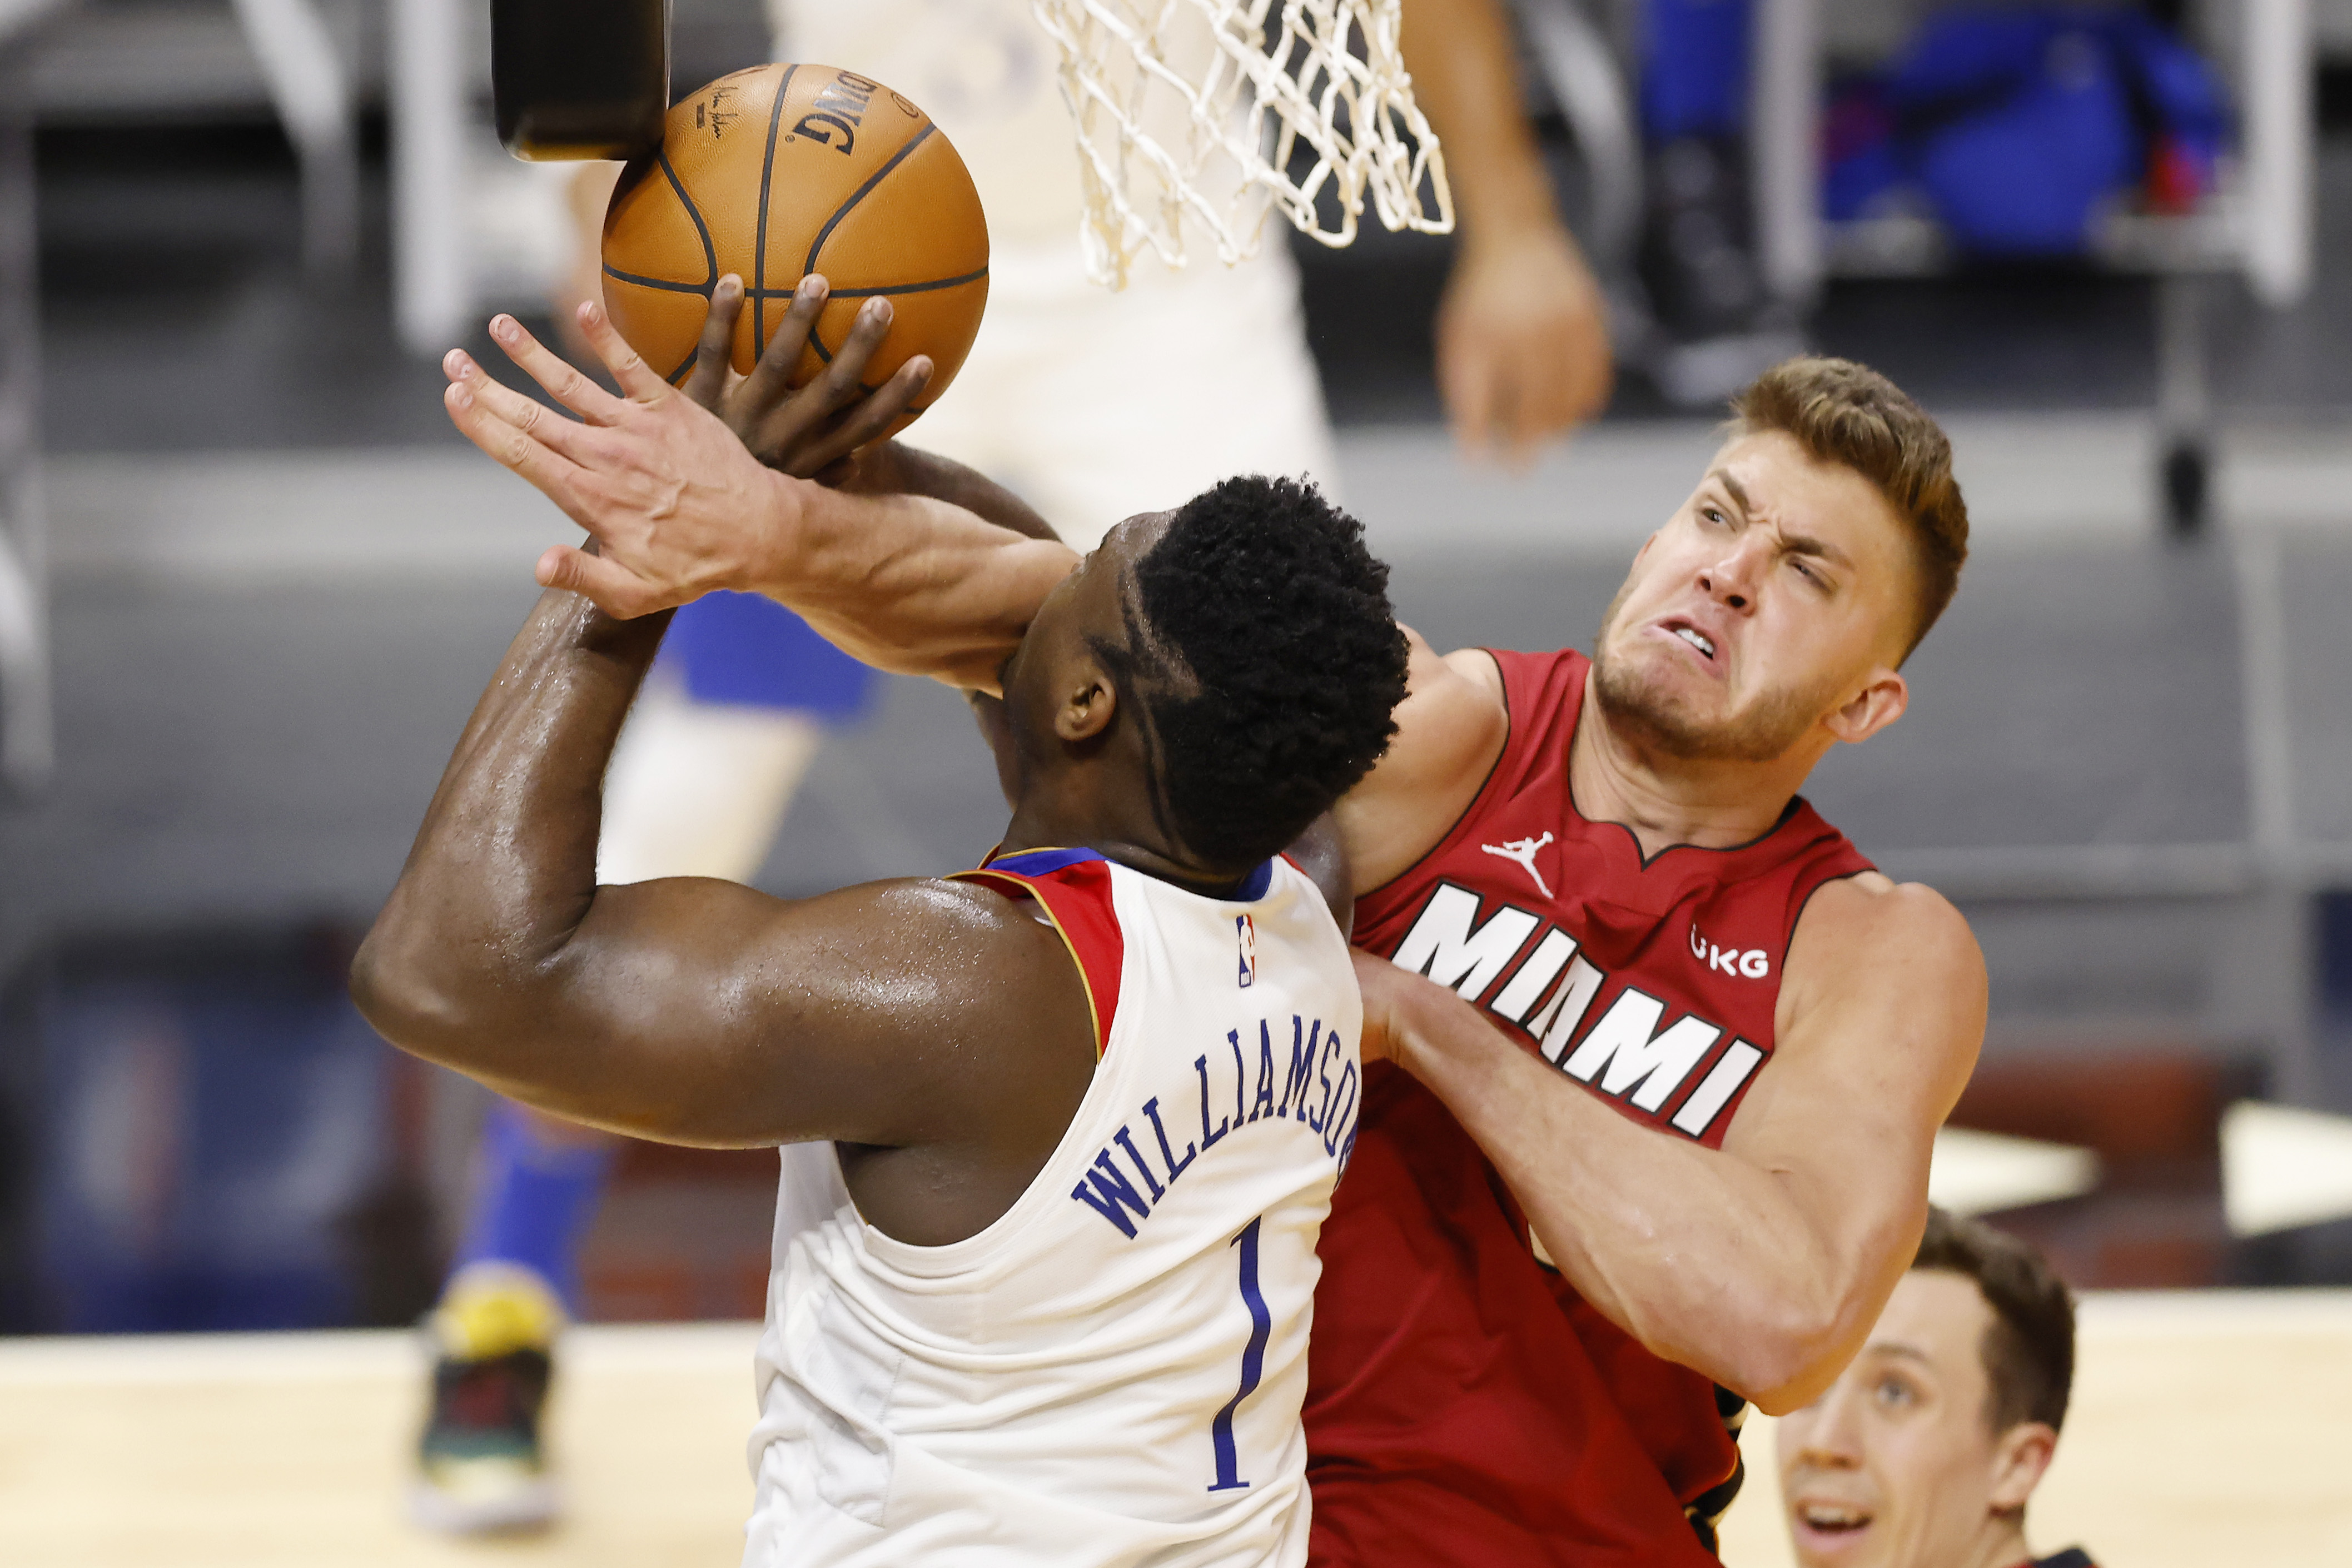 Zion Williamson of the New Orleans Pelicans goes up for a shot at the rim but gets fouled by Meyers Leonard of the Miami Heat